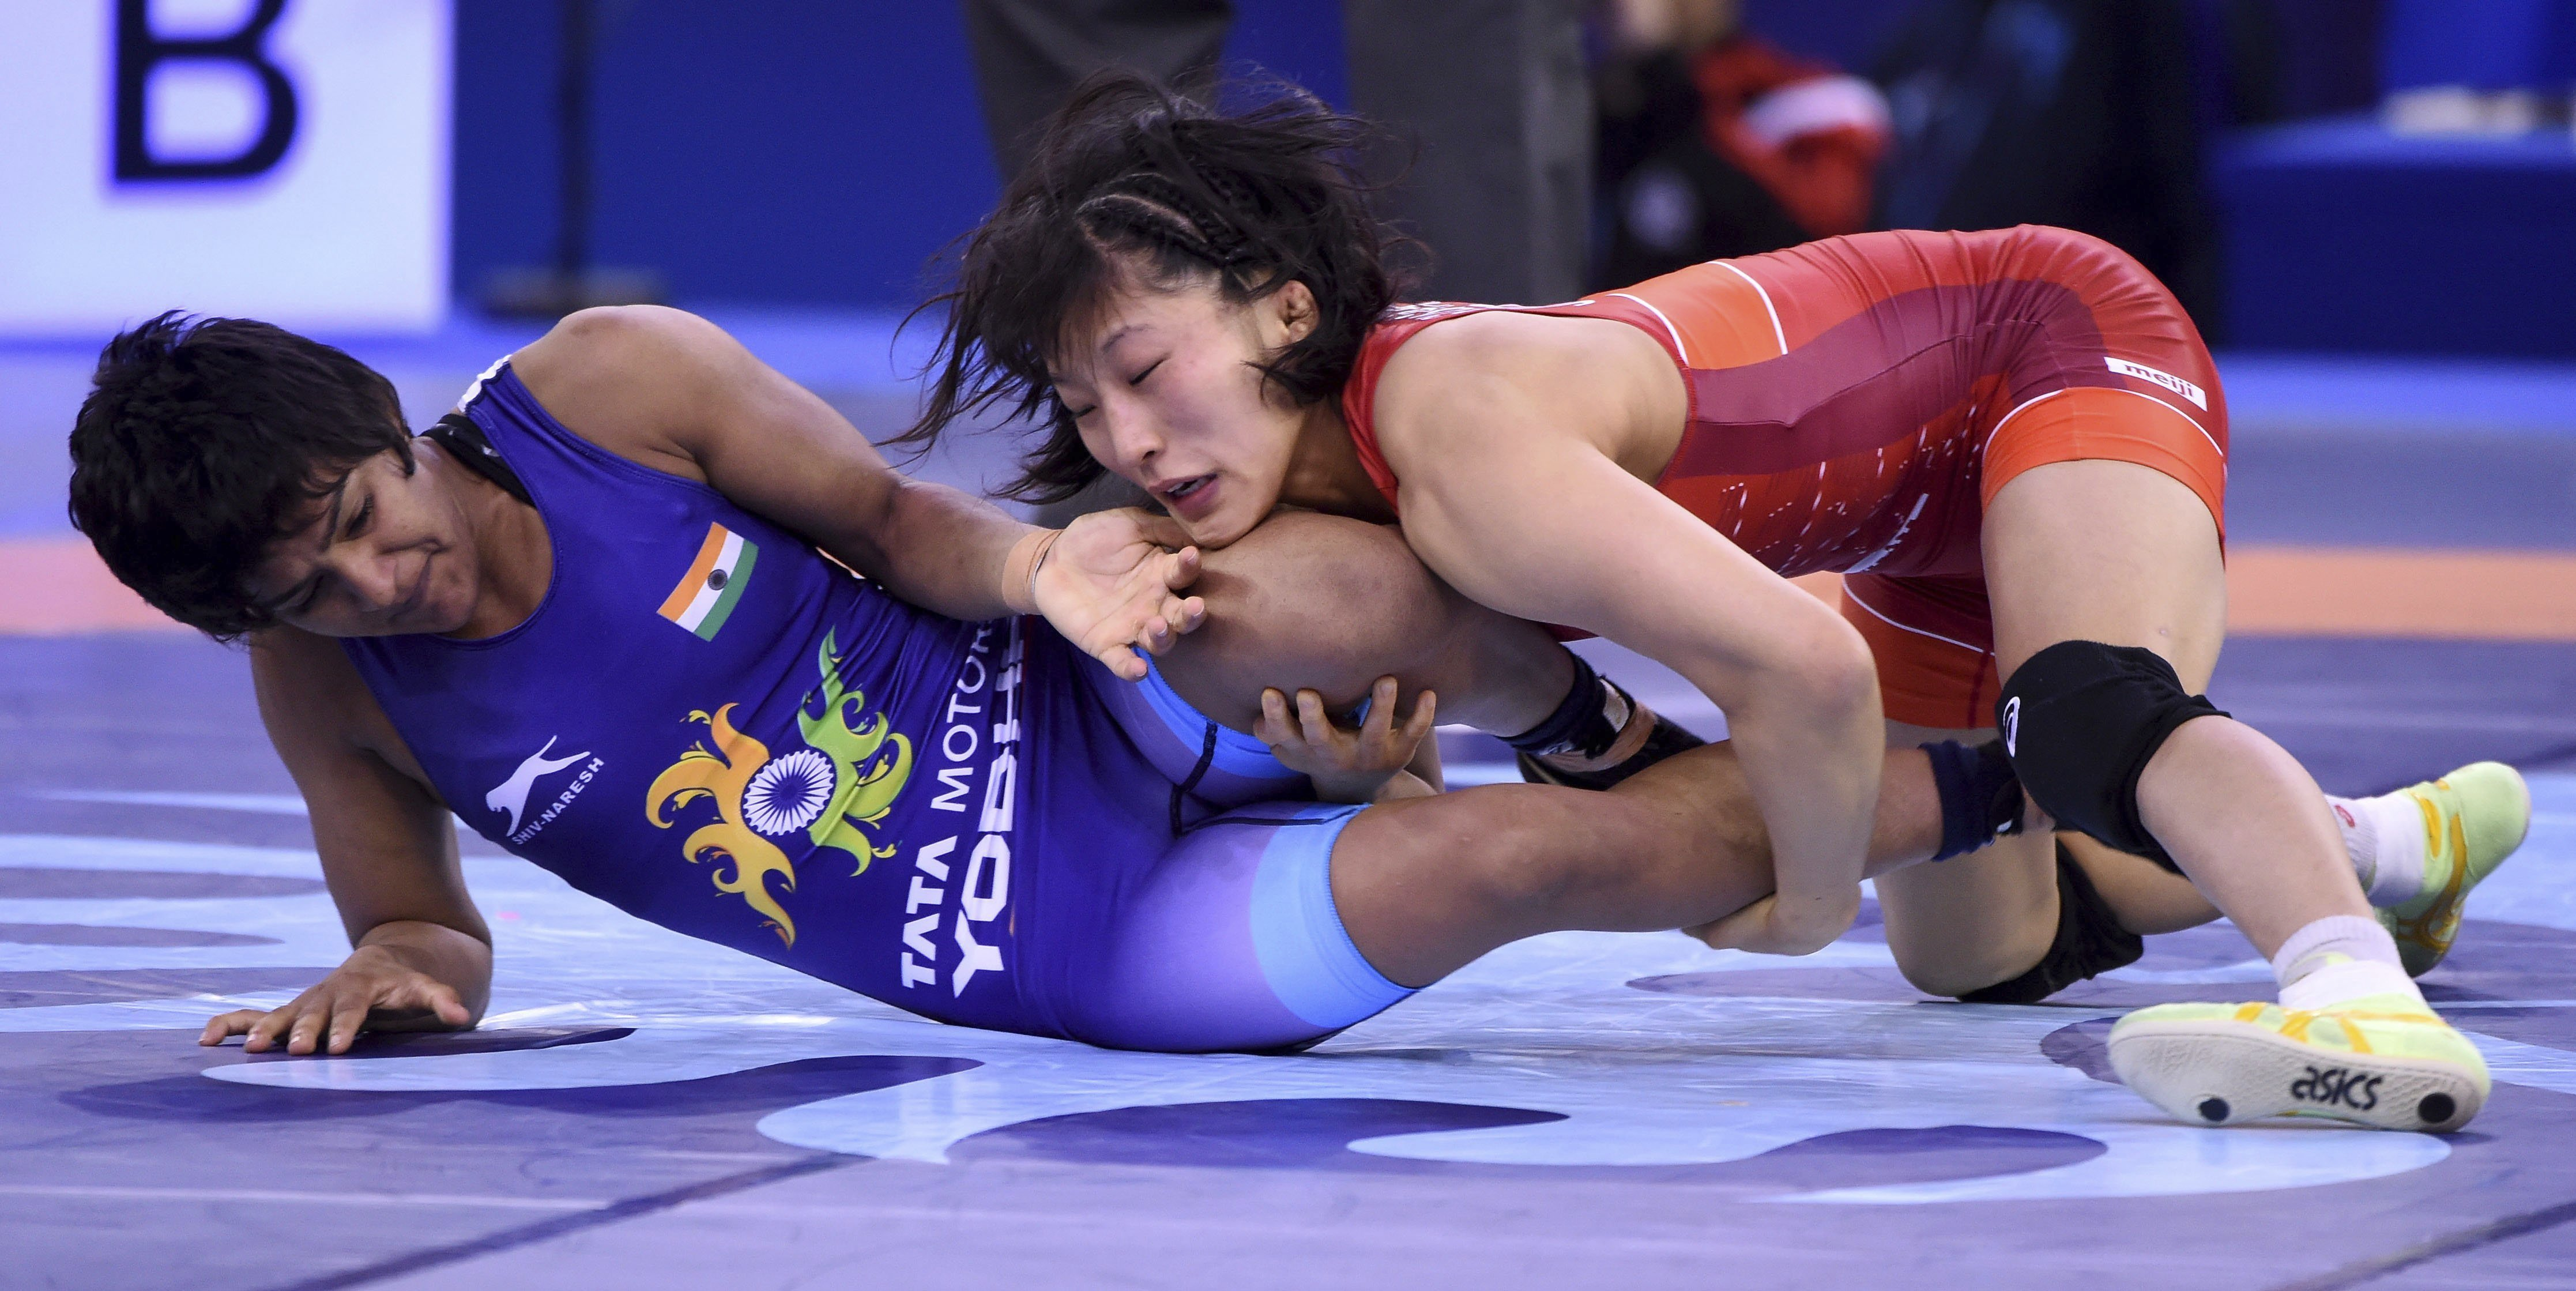 Yui Susaki, in red, of Japan wins against Ritu Phogat of India in the quarterfinal of the women's 50kg category of the Wrestling World Championships in Budapest - AP